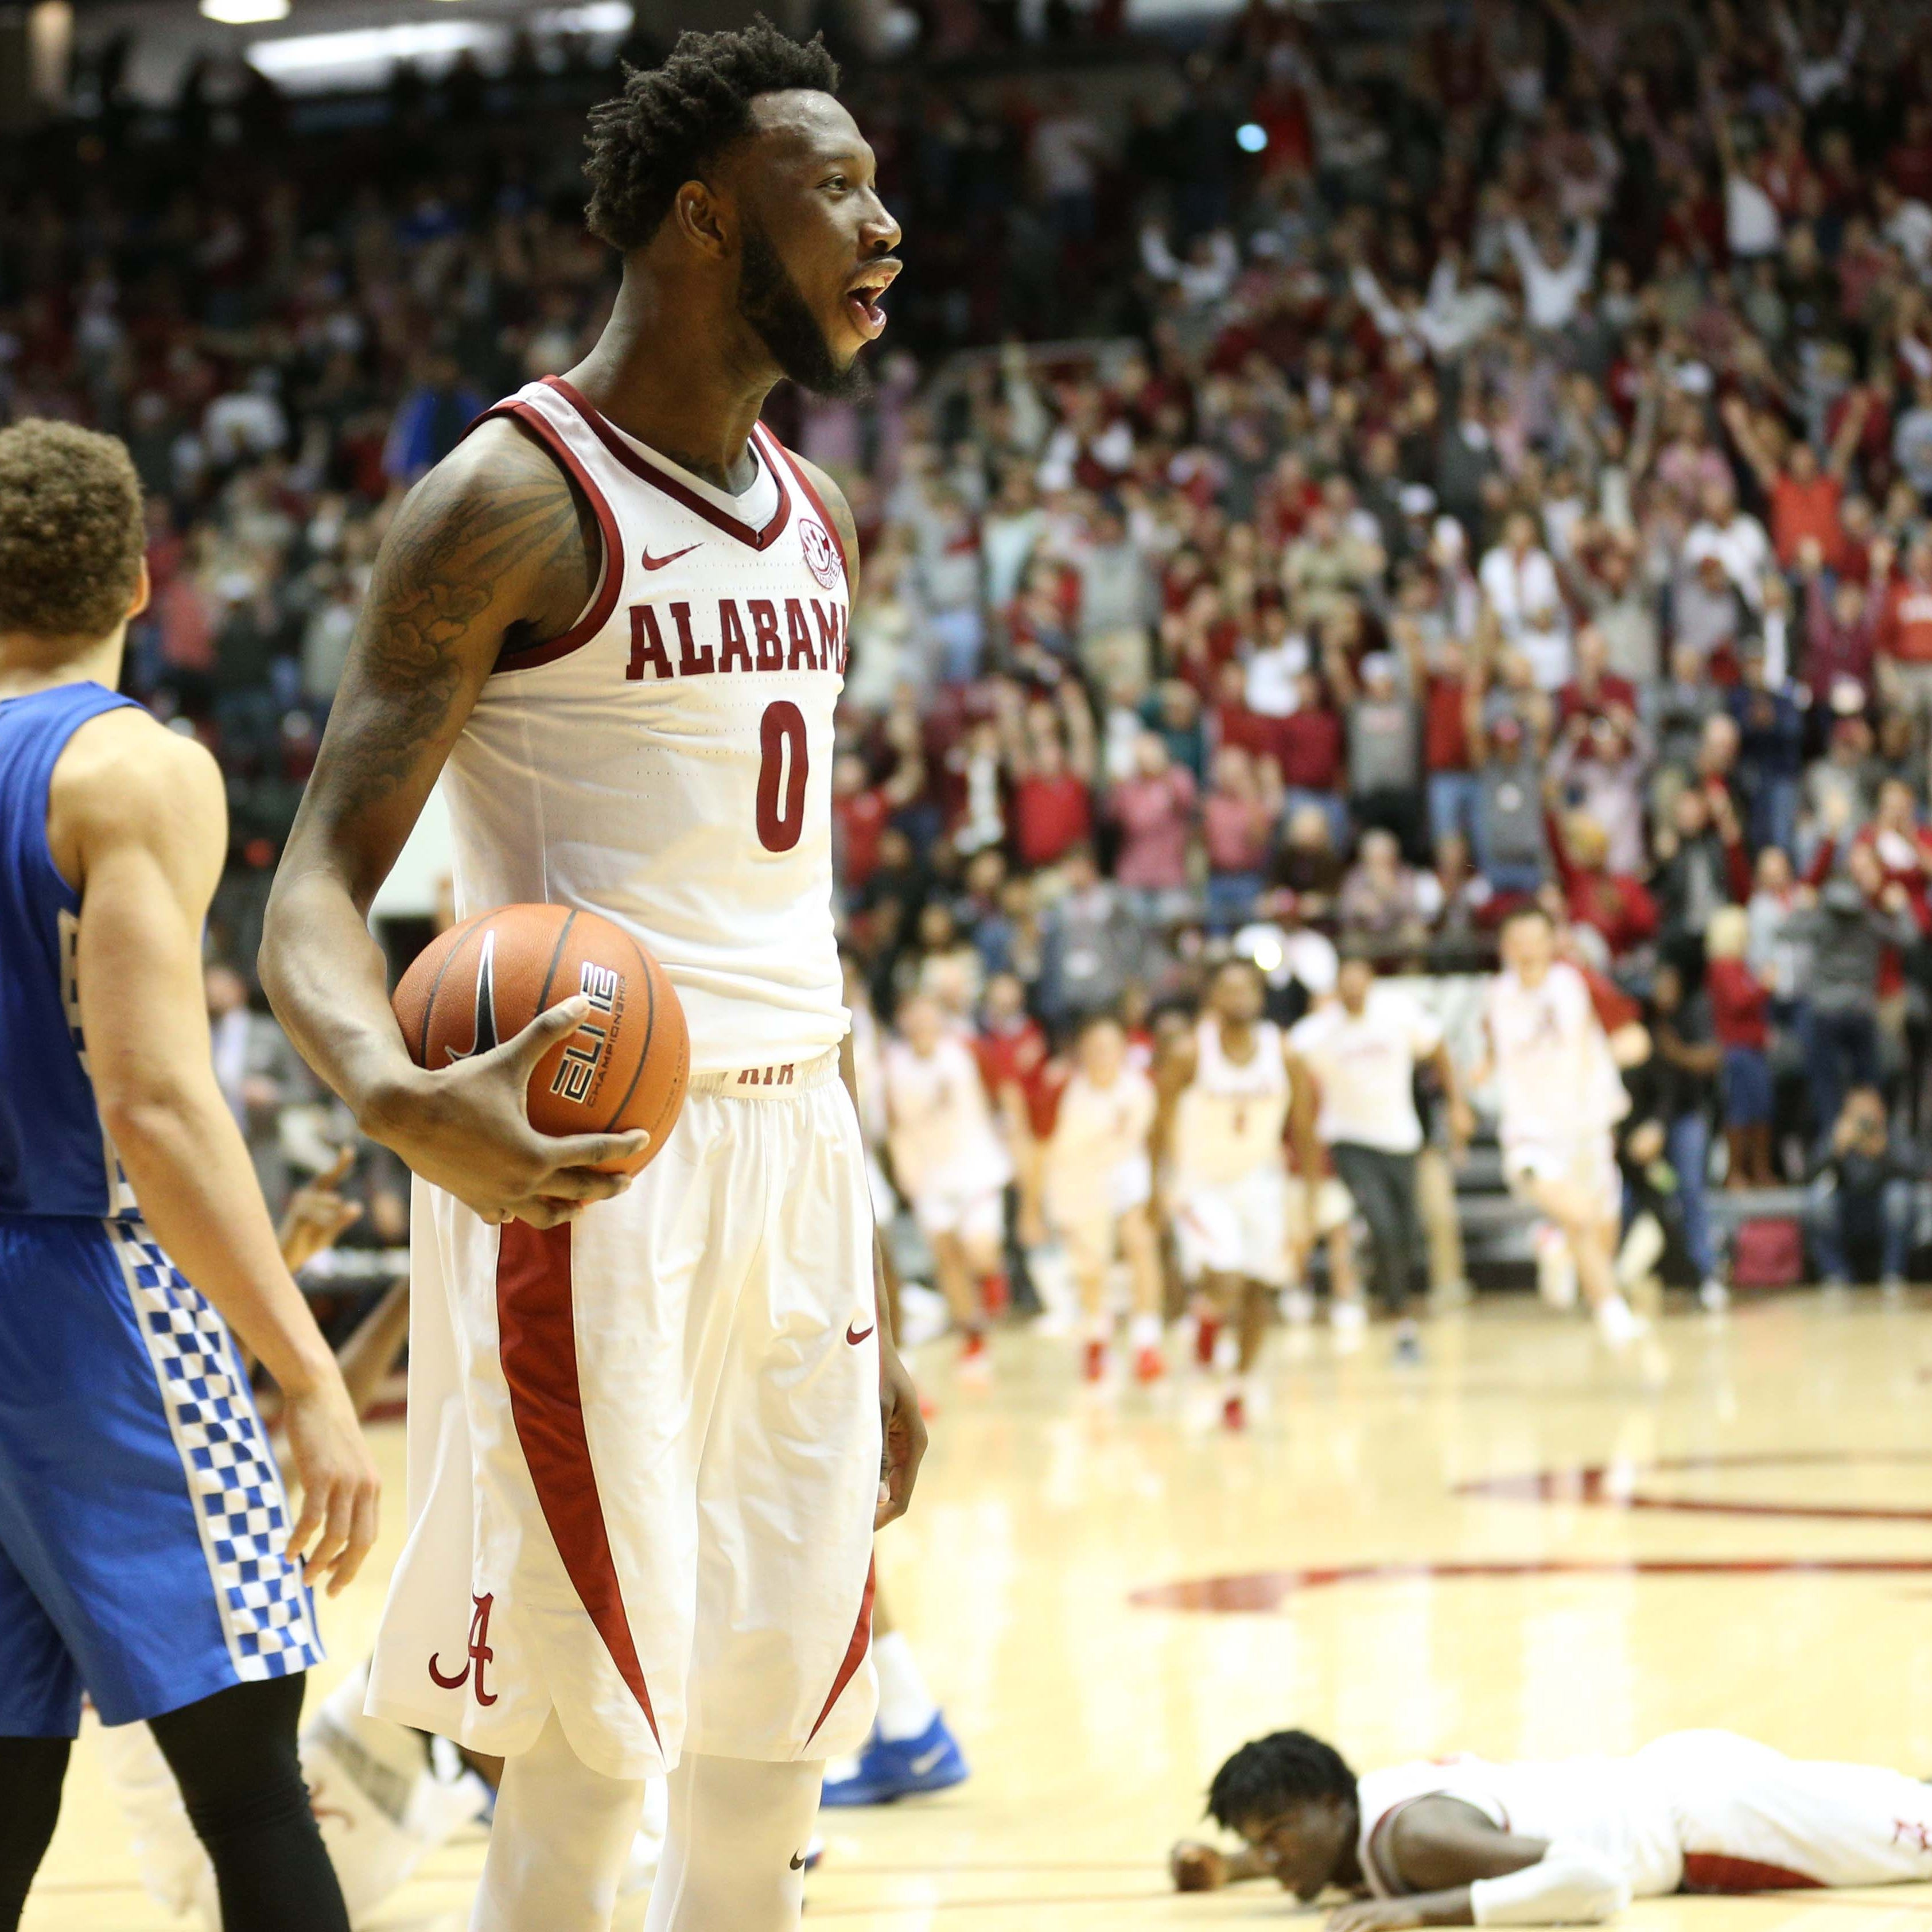 How to watch Alabama vs. LSU men's basketball on TV, live stream